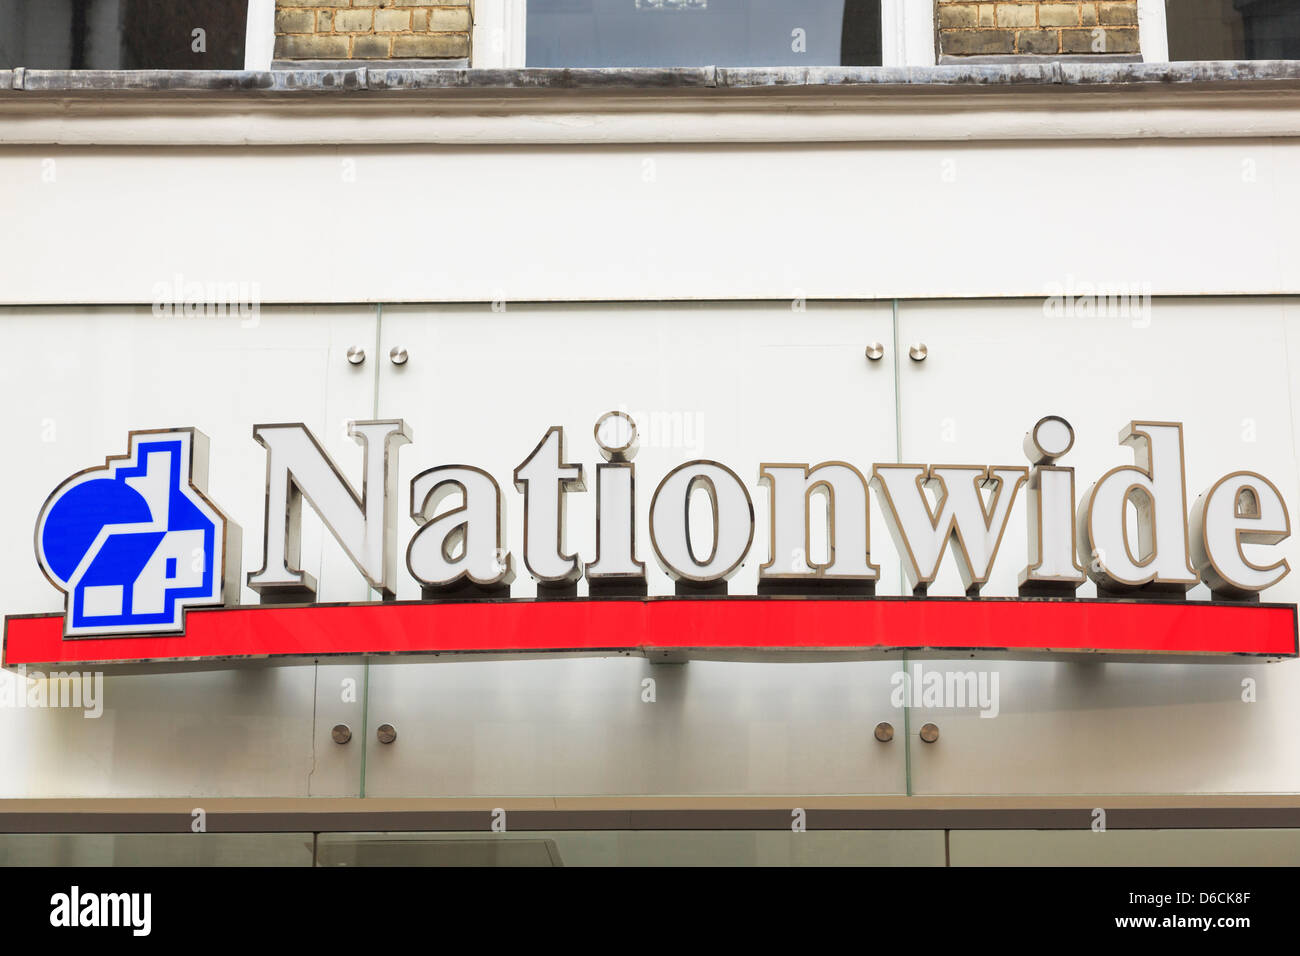 Nationwide Building Society name sign and logo above a bank branch. England, UK, Britain - Stock Image